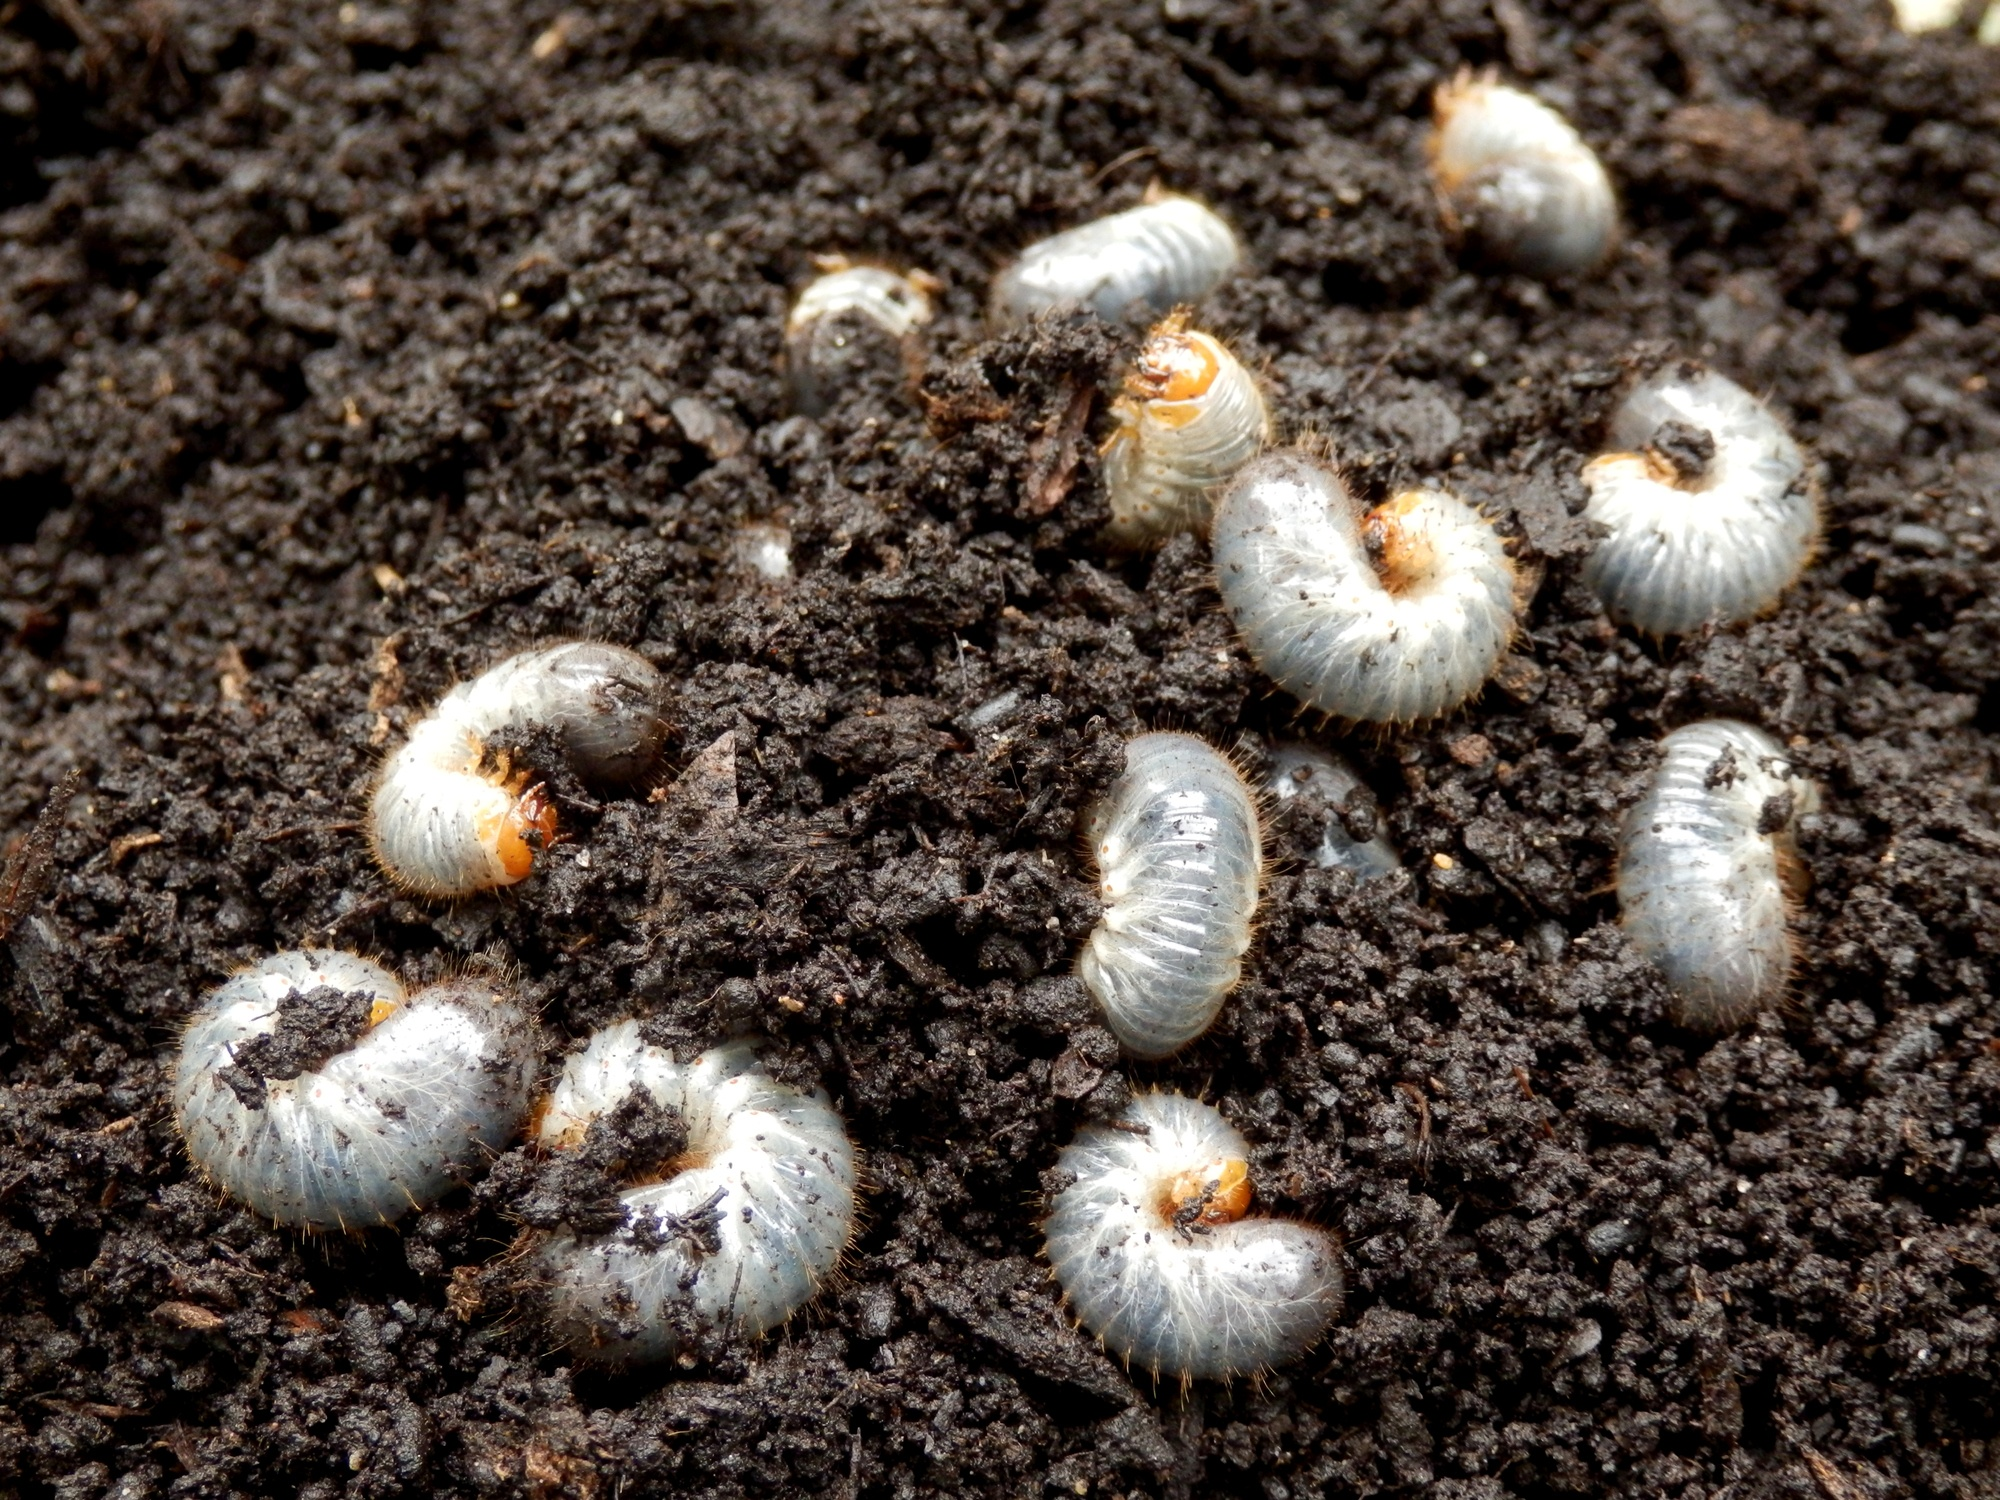 Most homeowners don't know that white grubs are present until they suffer significant turf loss from secondary pests.